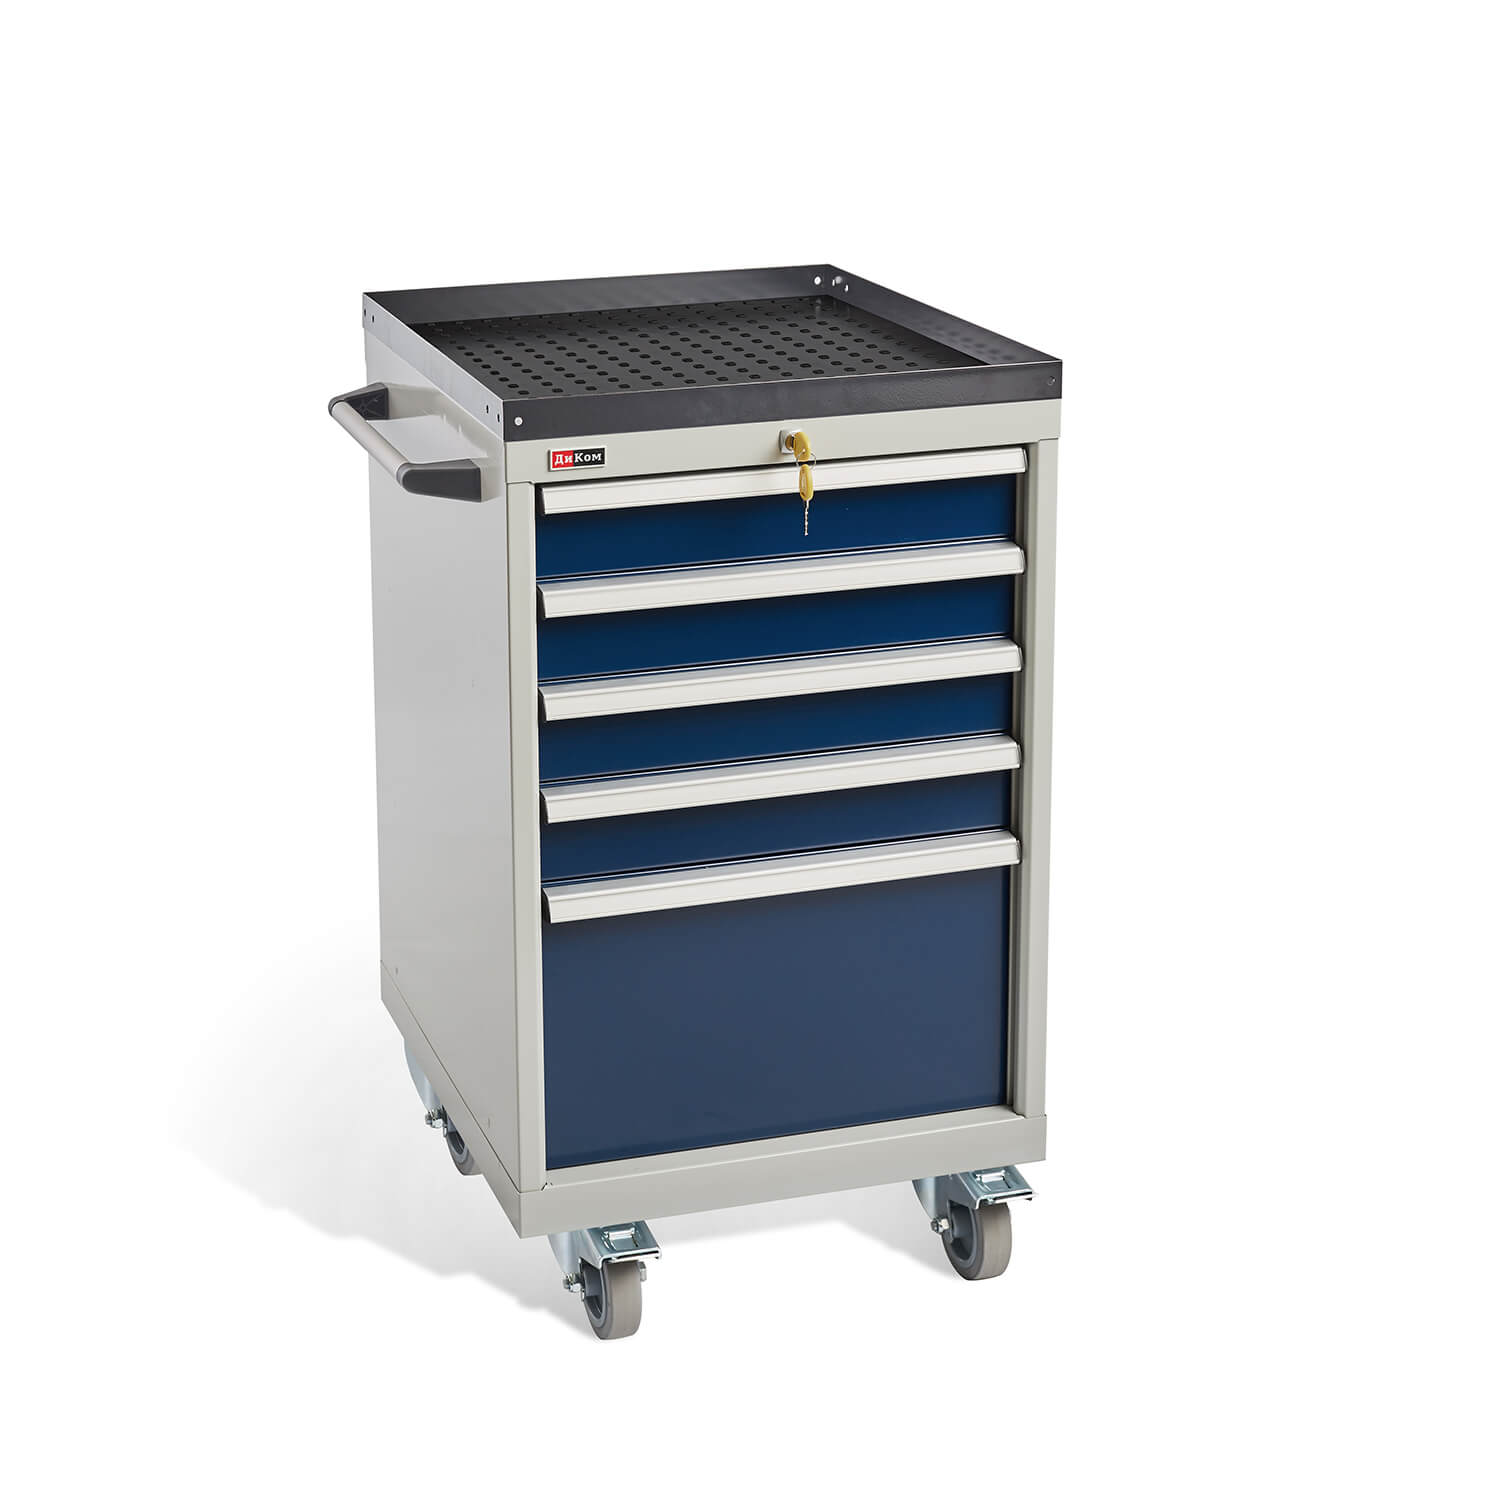 DiKom VS-015 Tool Cabinet with castors, a tray and a side handle